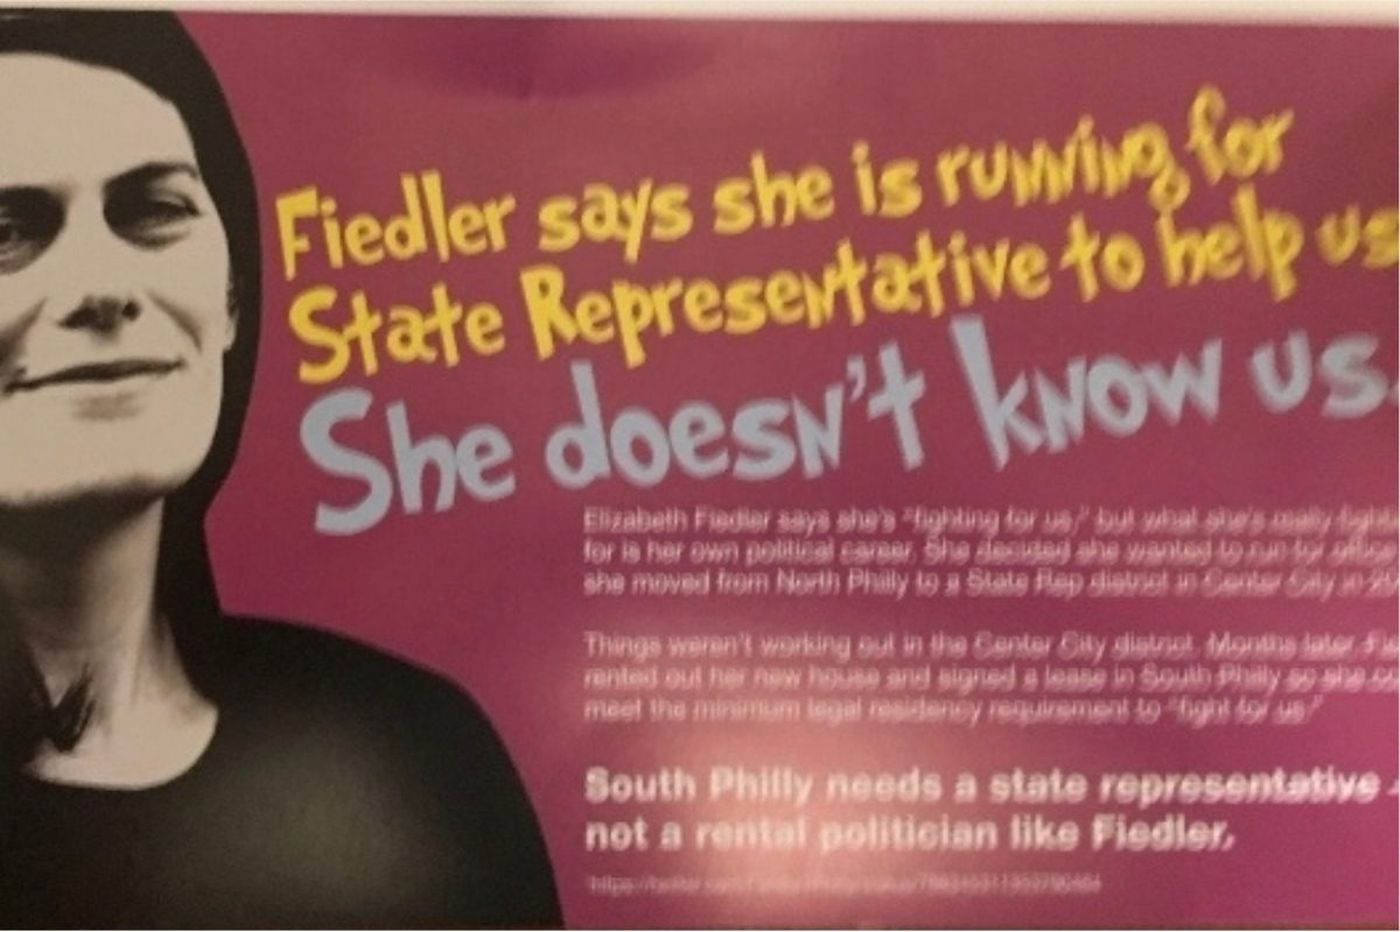 Attack ad in State Rep. race highlights Old Philly vs. New Philly divide